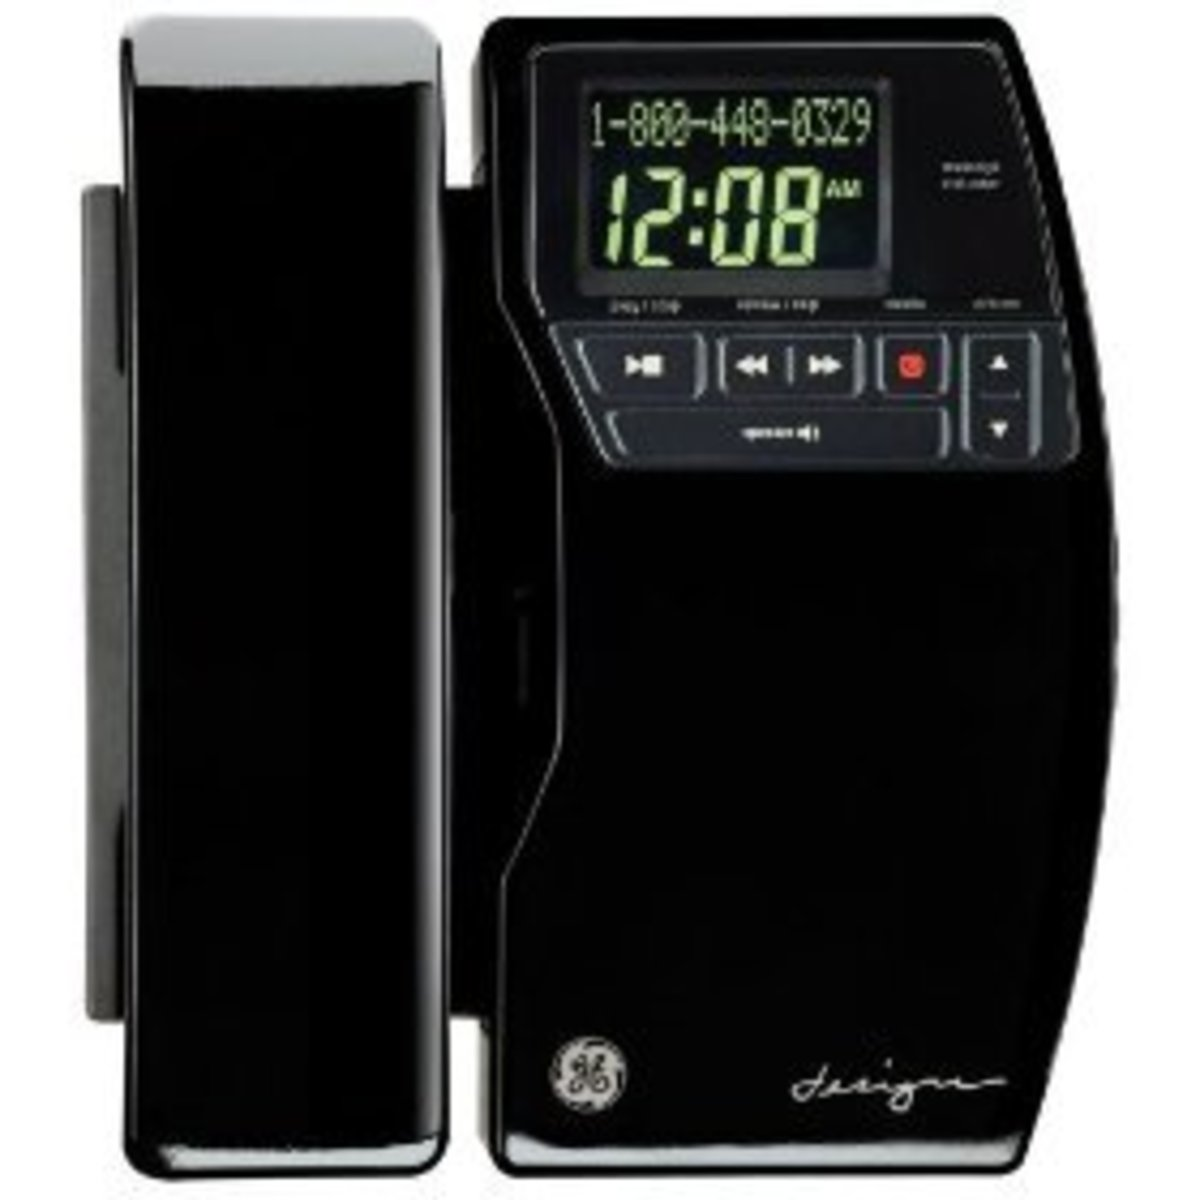 GE 27909FE1 Dect 6.0 Cordless High-Gloss Designer Phone with Digital Answering System and CID (Black)